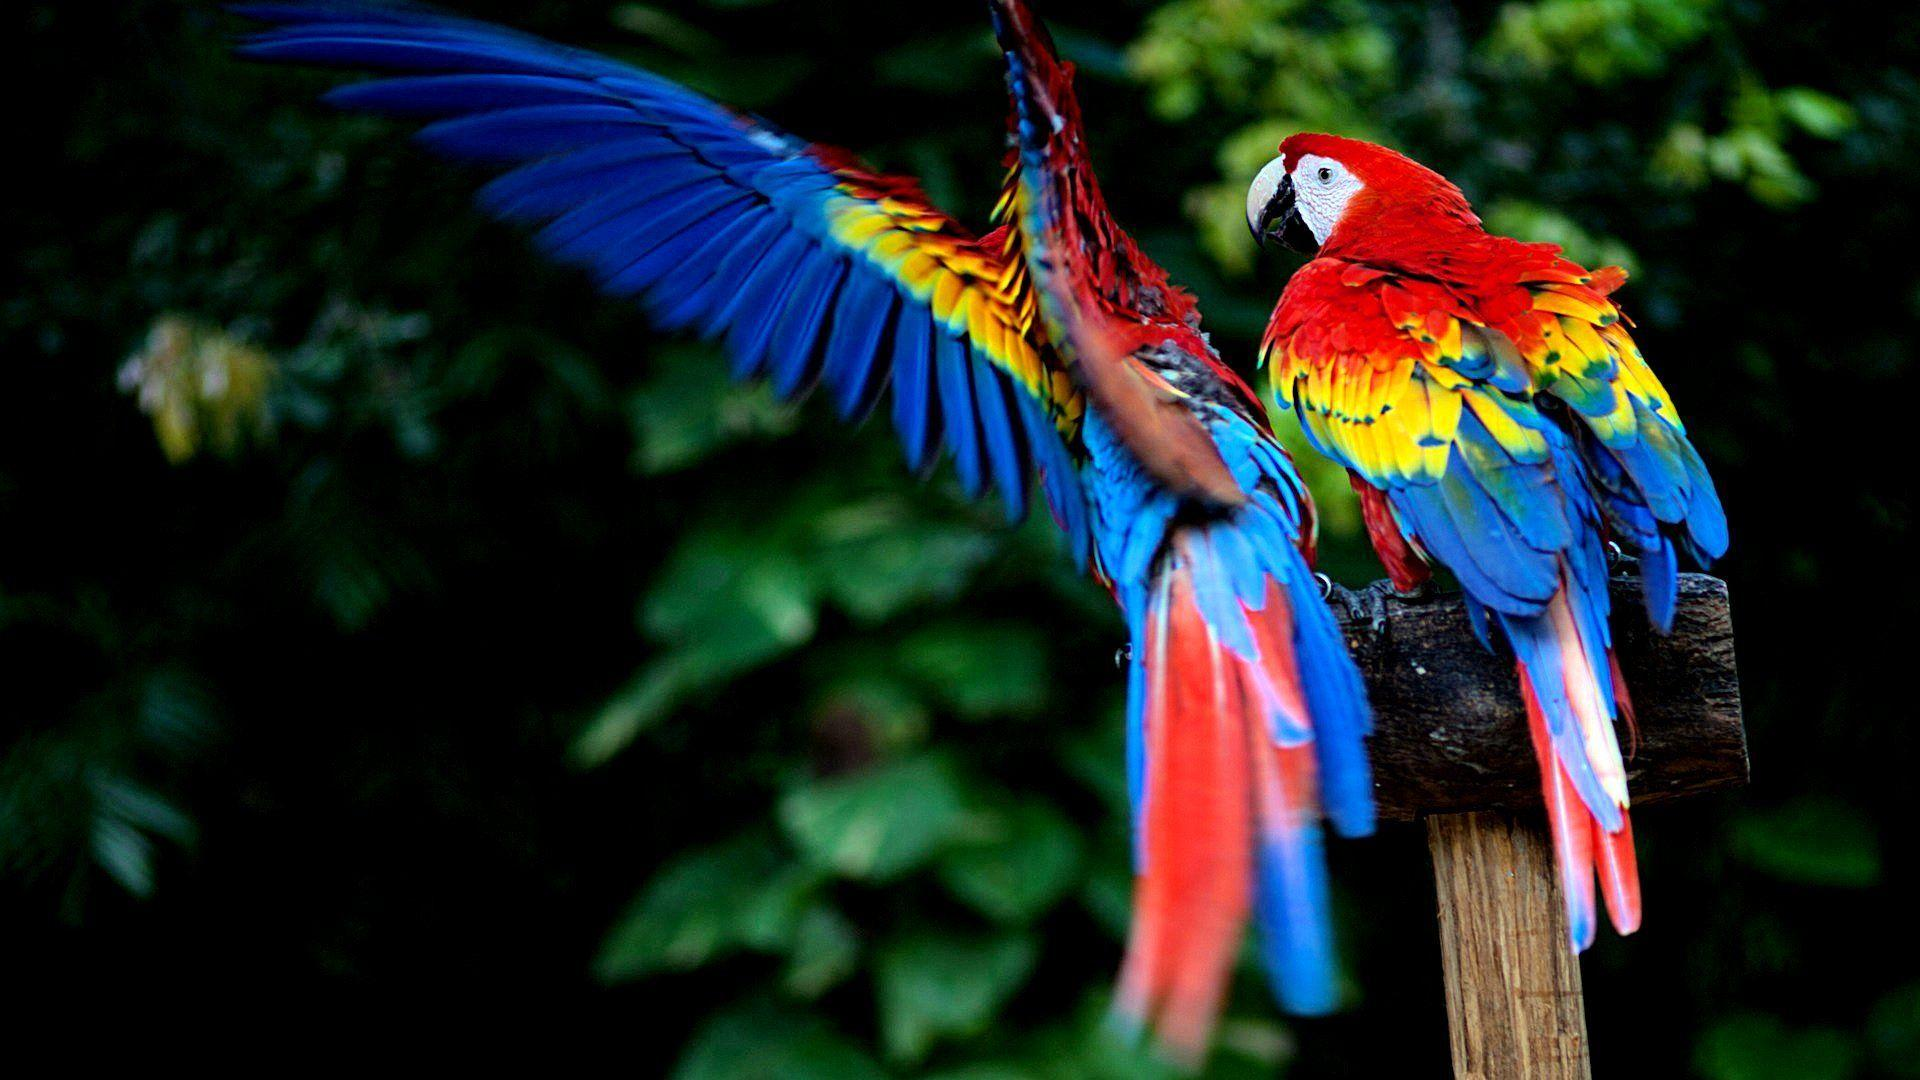 Macaw Wallpaper Wide - HDwallshare.com